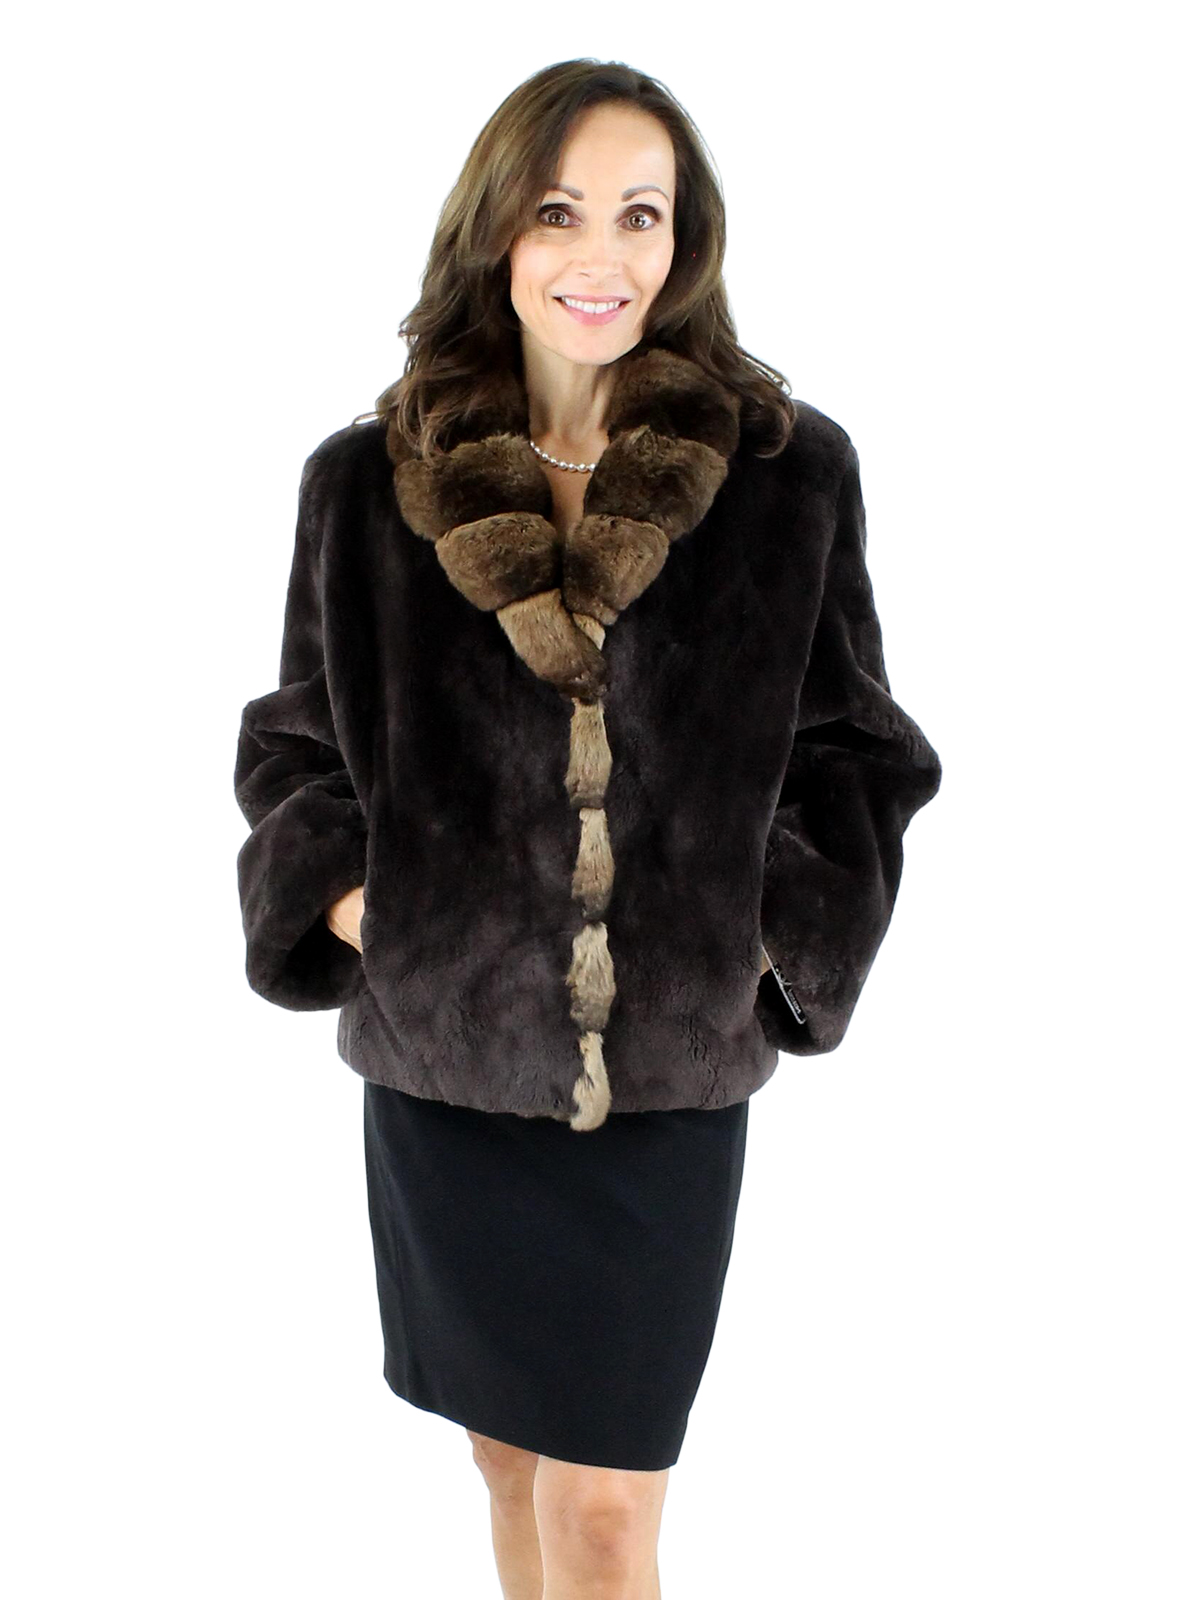 Chinchilla For Sale >> Sheared Beaver Fur Jacket - Women's Medium - Brown | Estate Furs